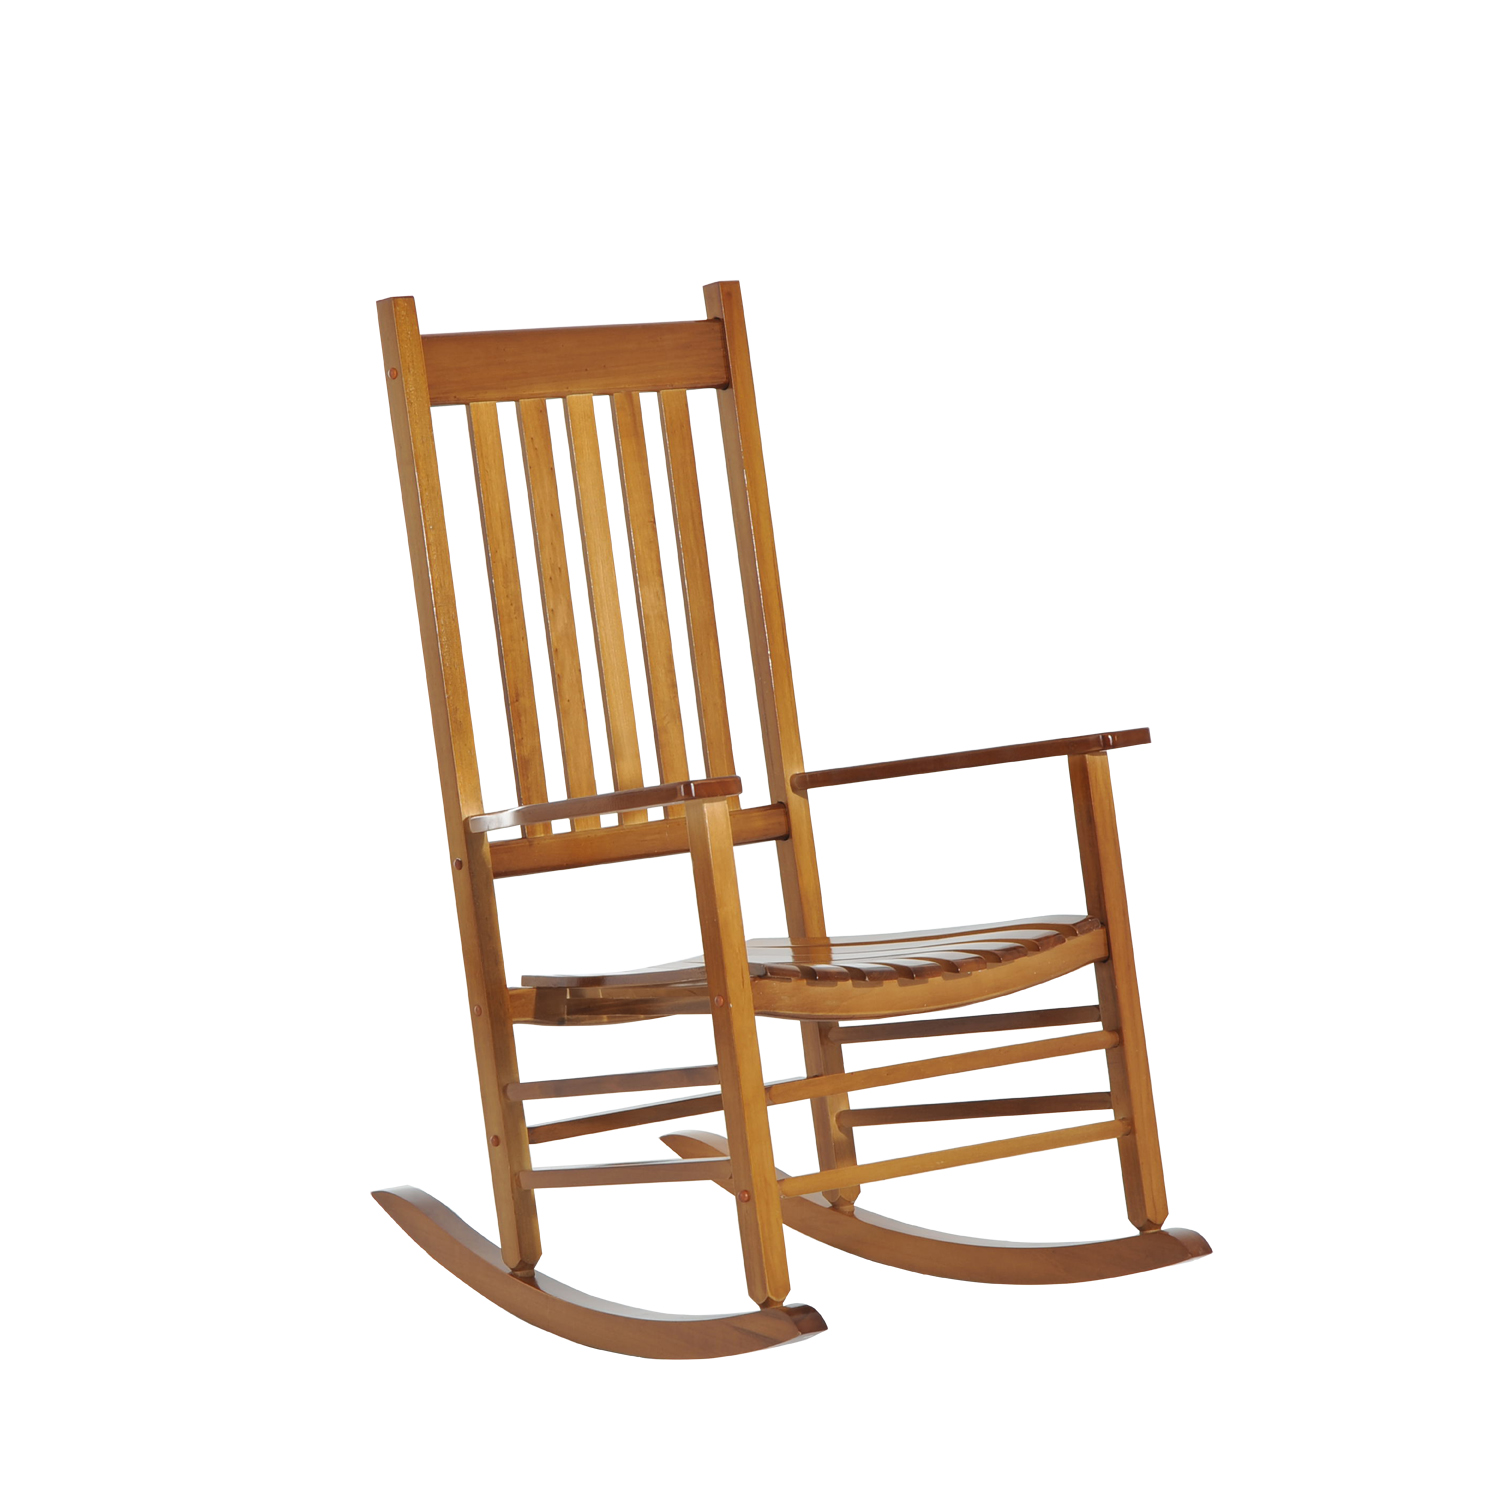 Outsunny Porch Rocking Chair   Outdoor Patio Wooden Rocking Chair (Natural)